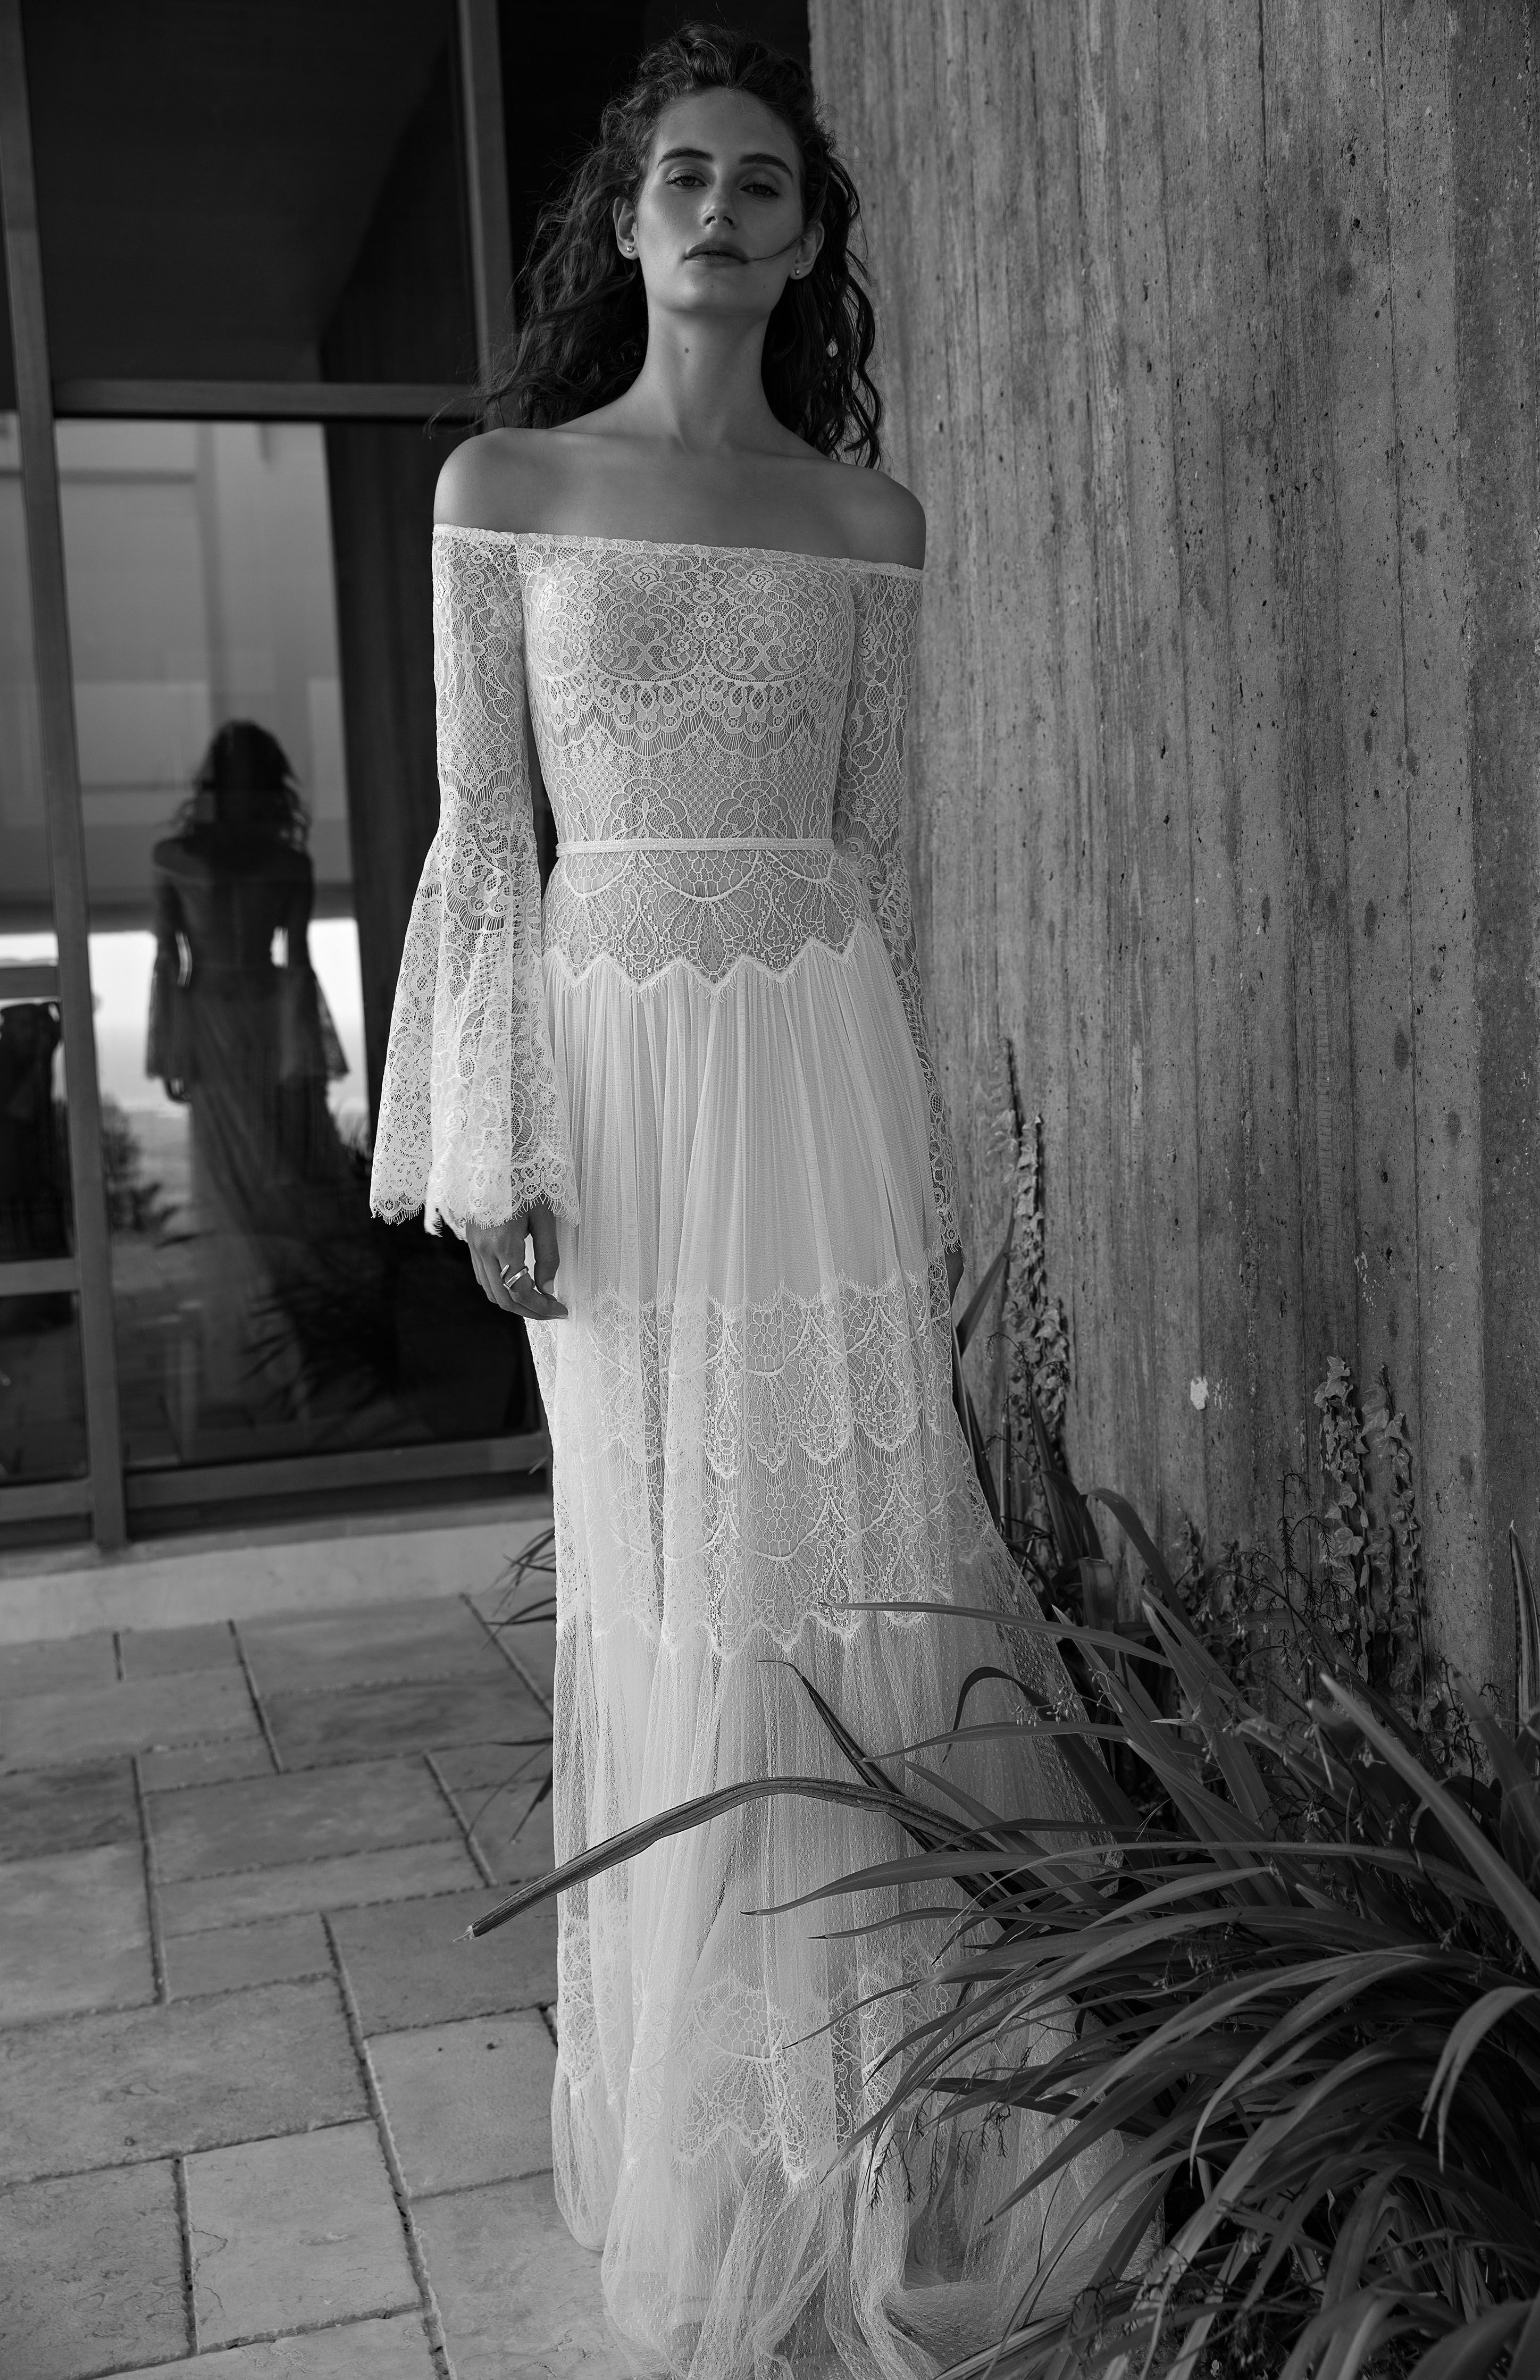 Bell sleeves full lace wedding dress by flora identity collection